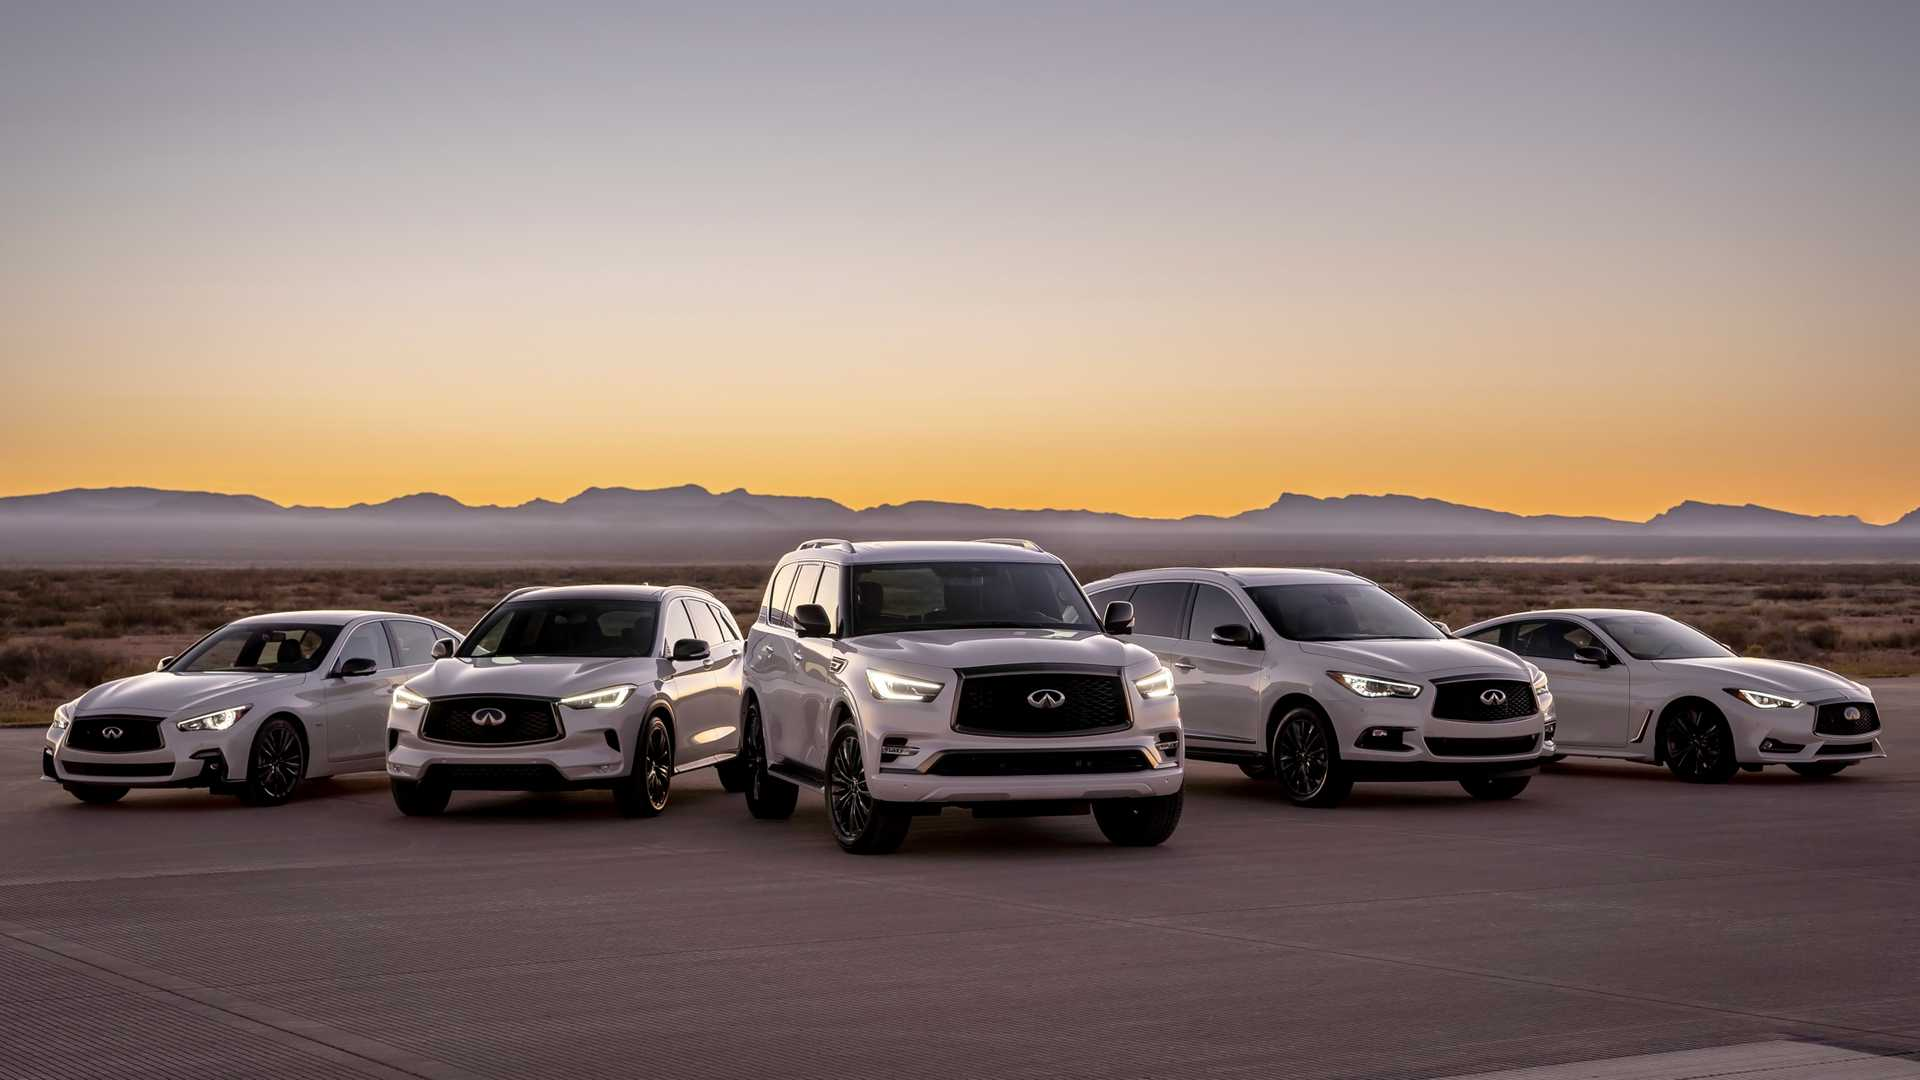 Infiniti Prices Edition 30 Models That Mark Brand's 30th Anniversary